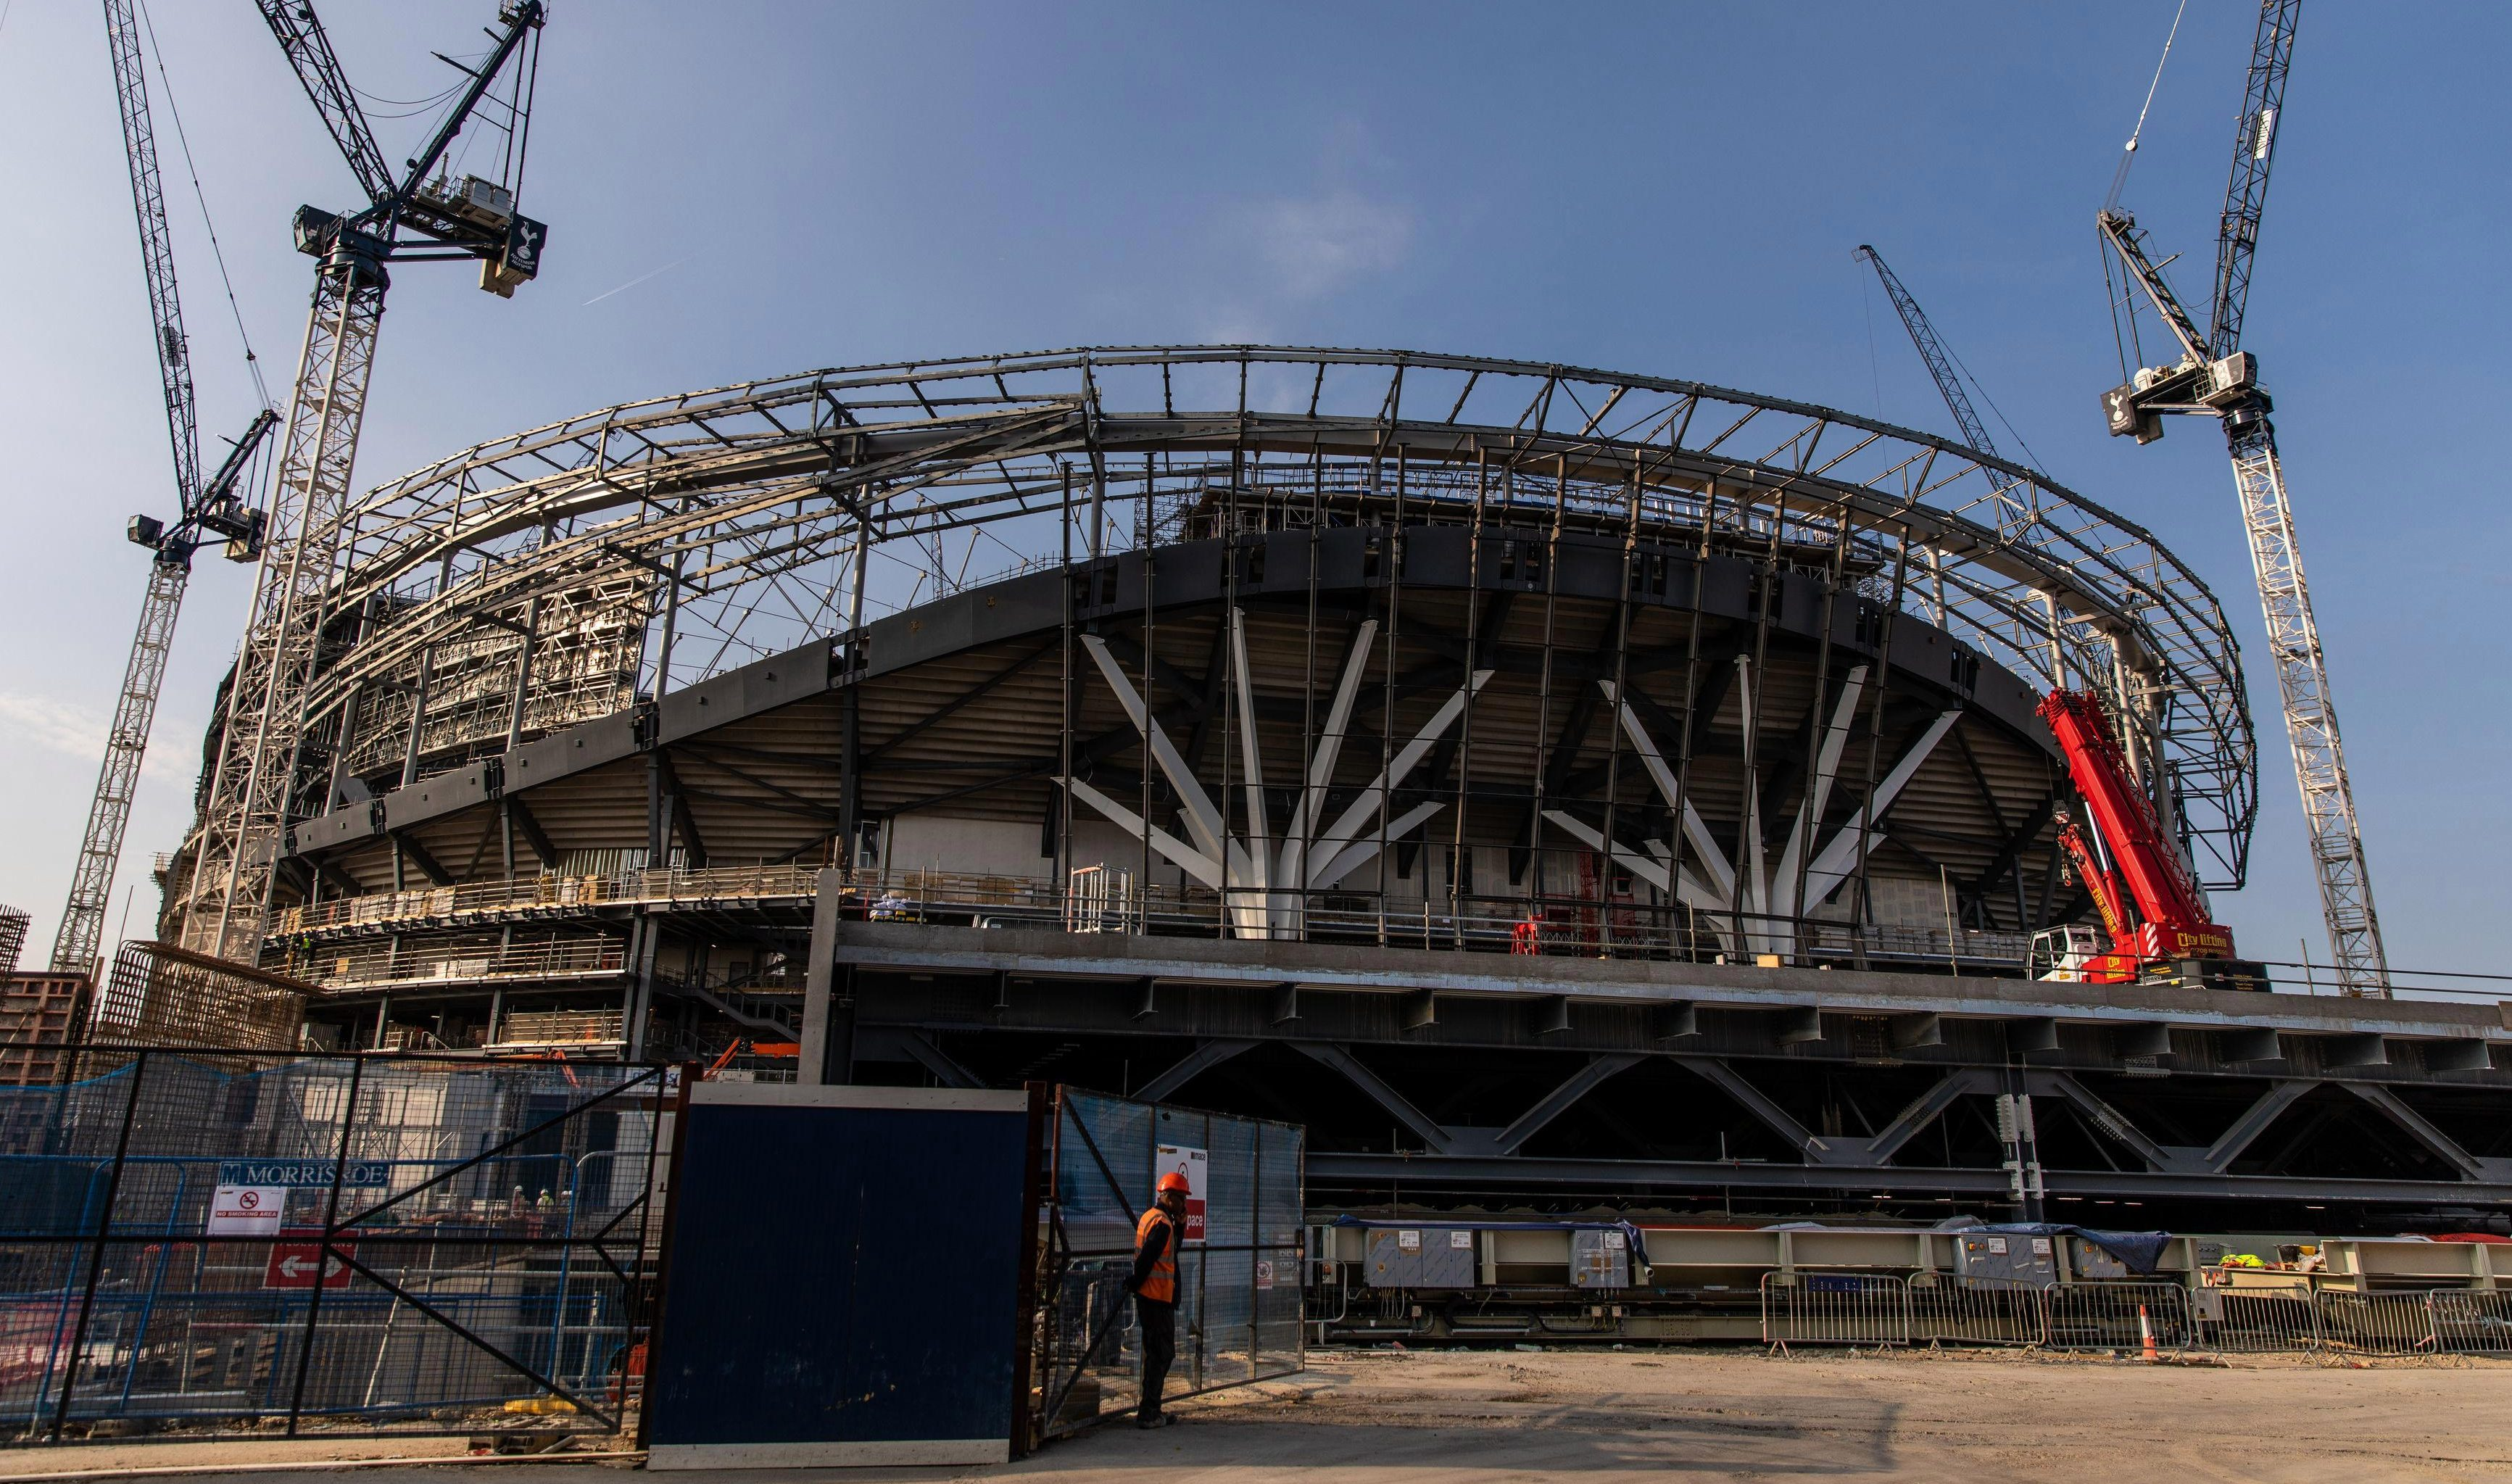 This new £850m Tottenham stadium is set to be ready for their lunchtime Premier League clash against Liverpool on September 15